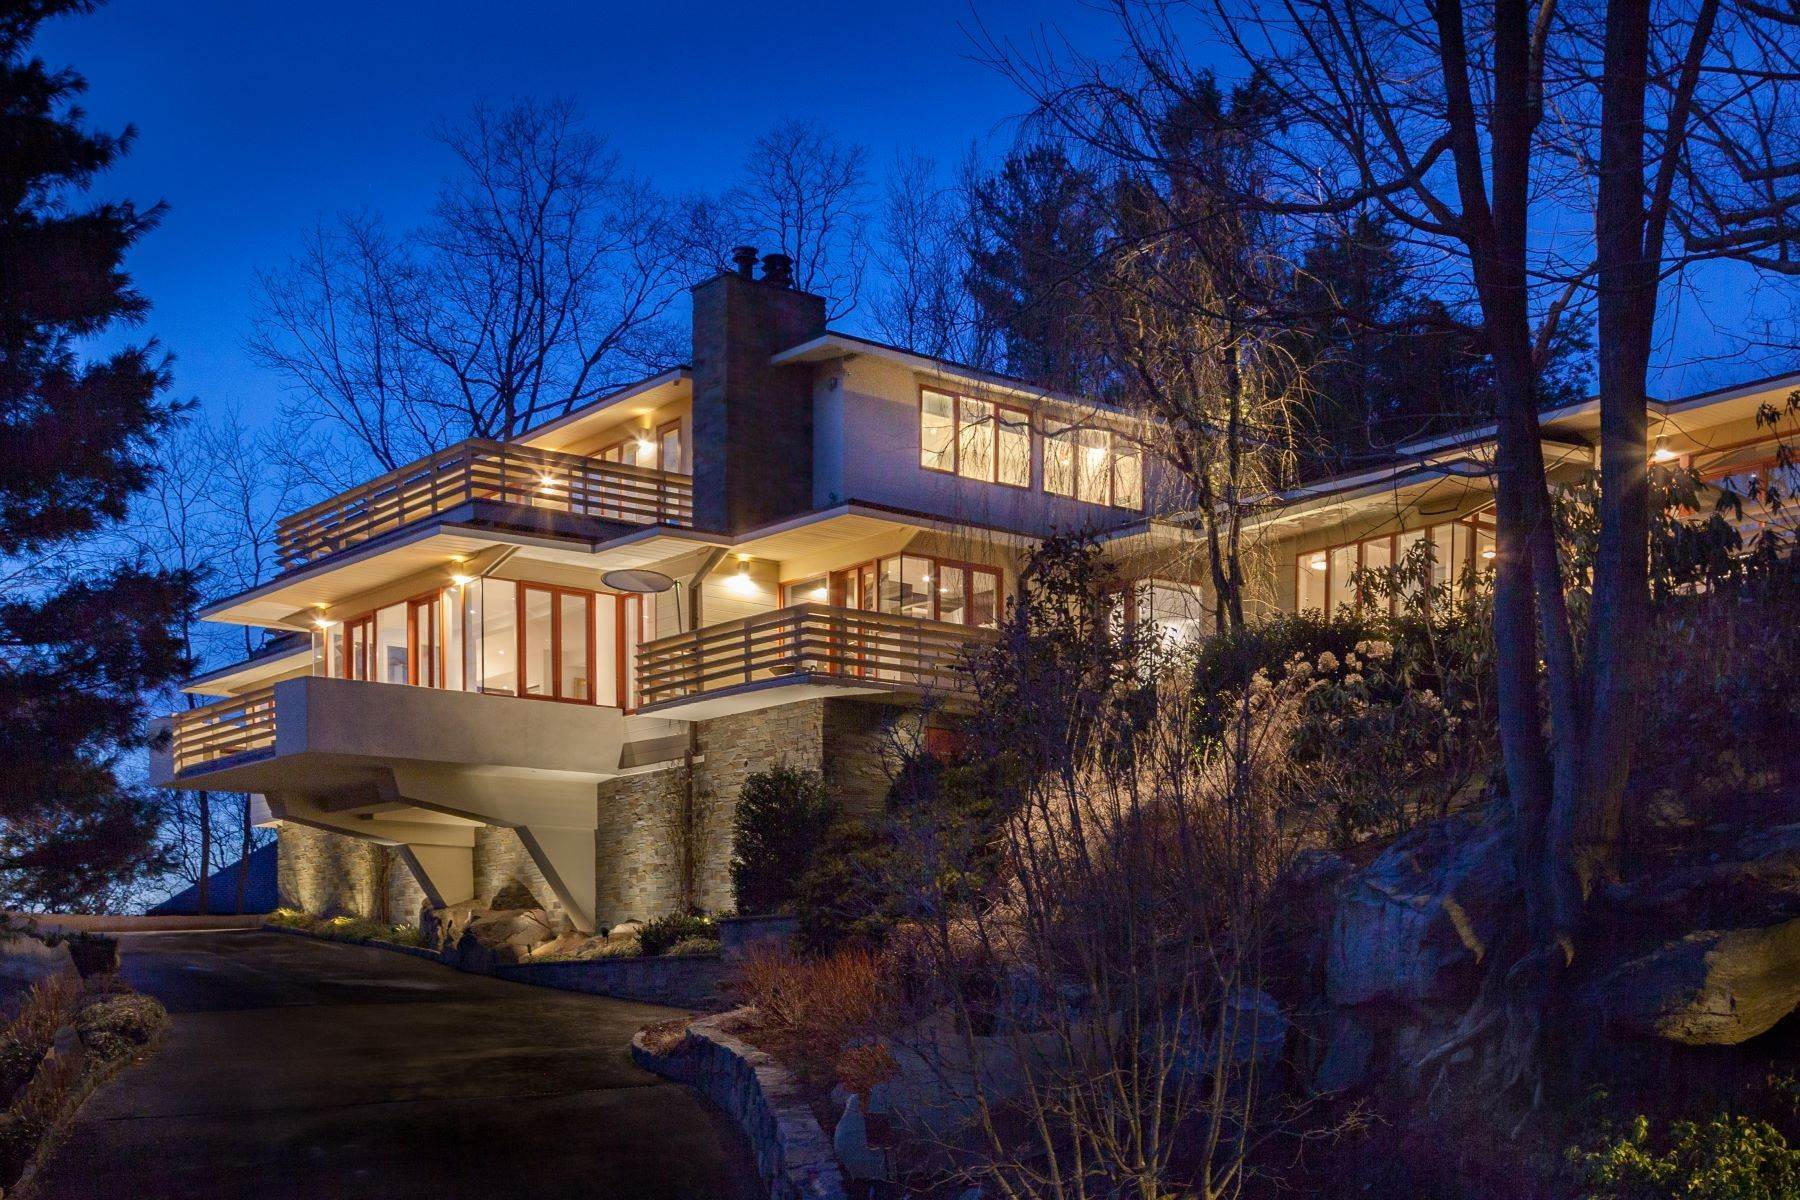 Single Family Homes for Sale at Welcome To 1 Governors Road 1 Governors Road Bronxville, New York 10708 United States